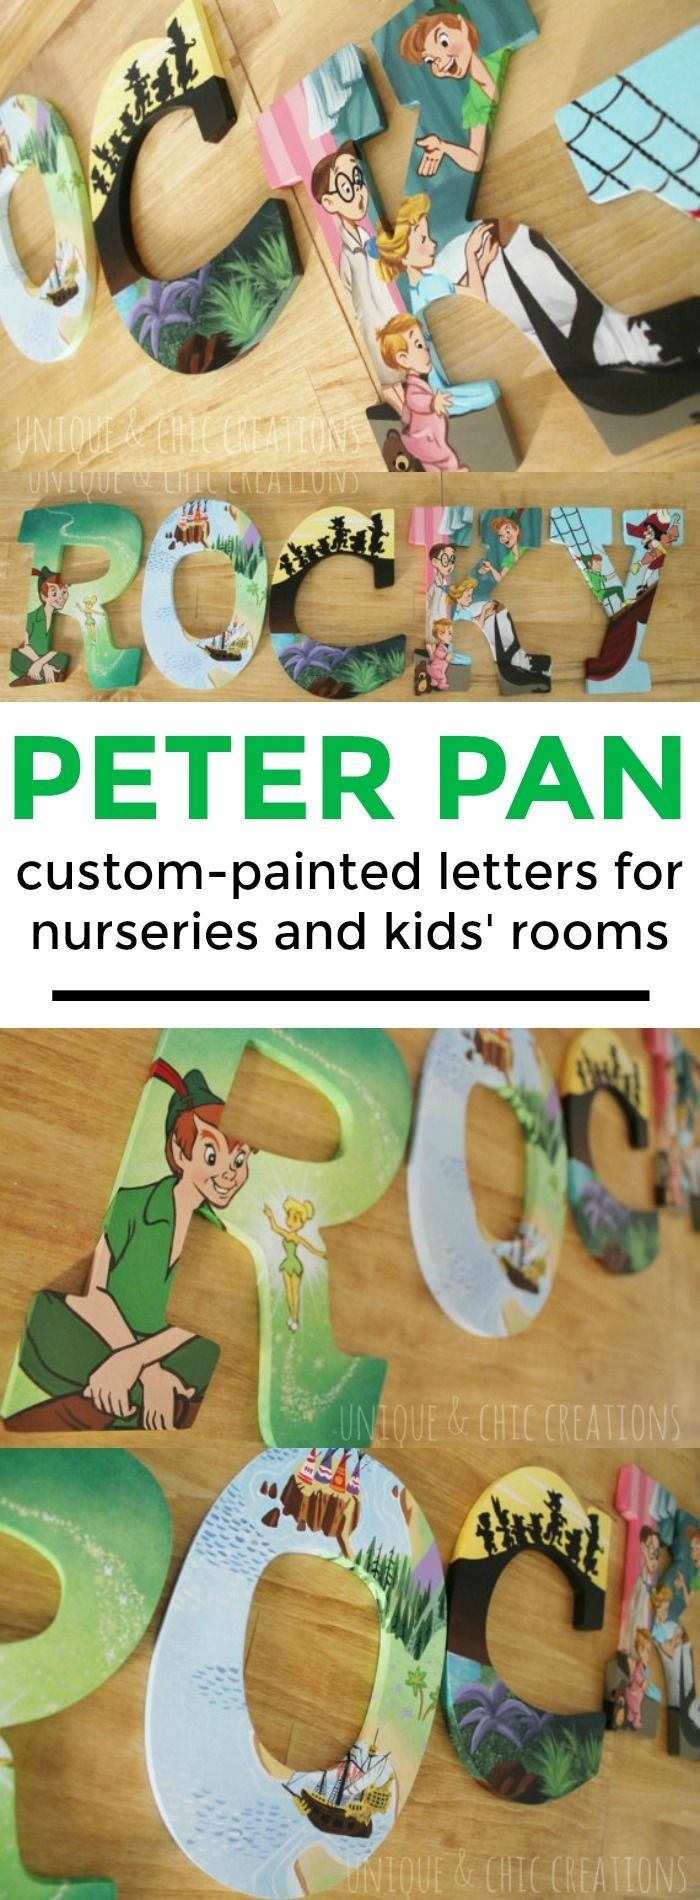 Peter Pan themed hand painted wooden letters for nurseries and kids' rooms | Unique and Chic Creations | custom wooden letters for kids' bedrooms | P.S. This shop has ALL 5-star reviews on Etsy! | affiliate link